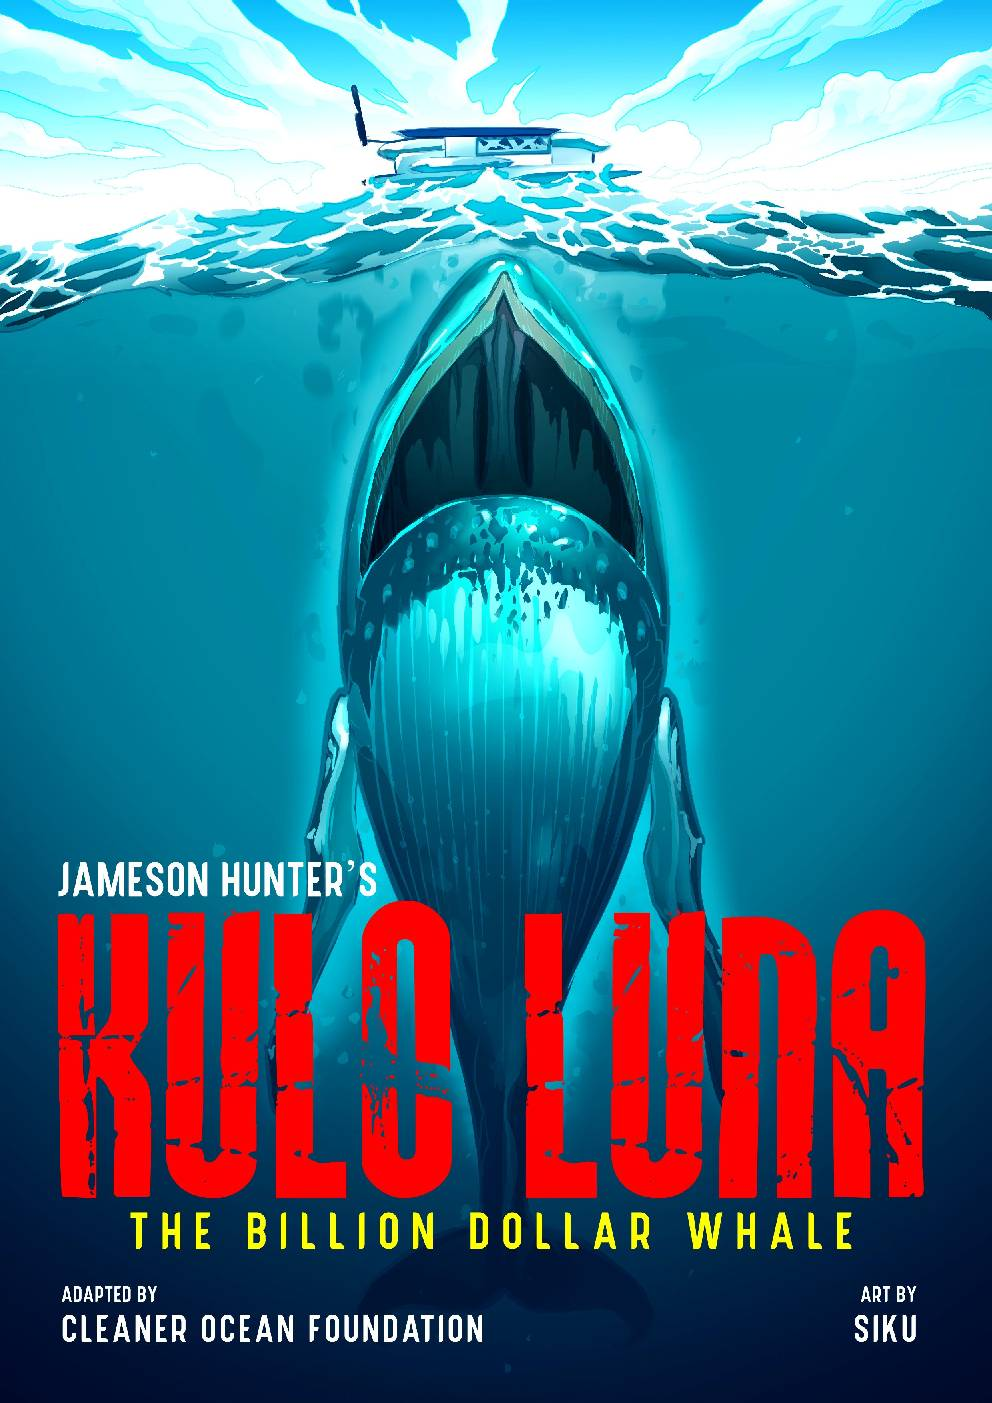 Kulo Luna is a humpback whale fighting for survival in unfriendly waters